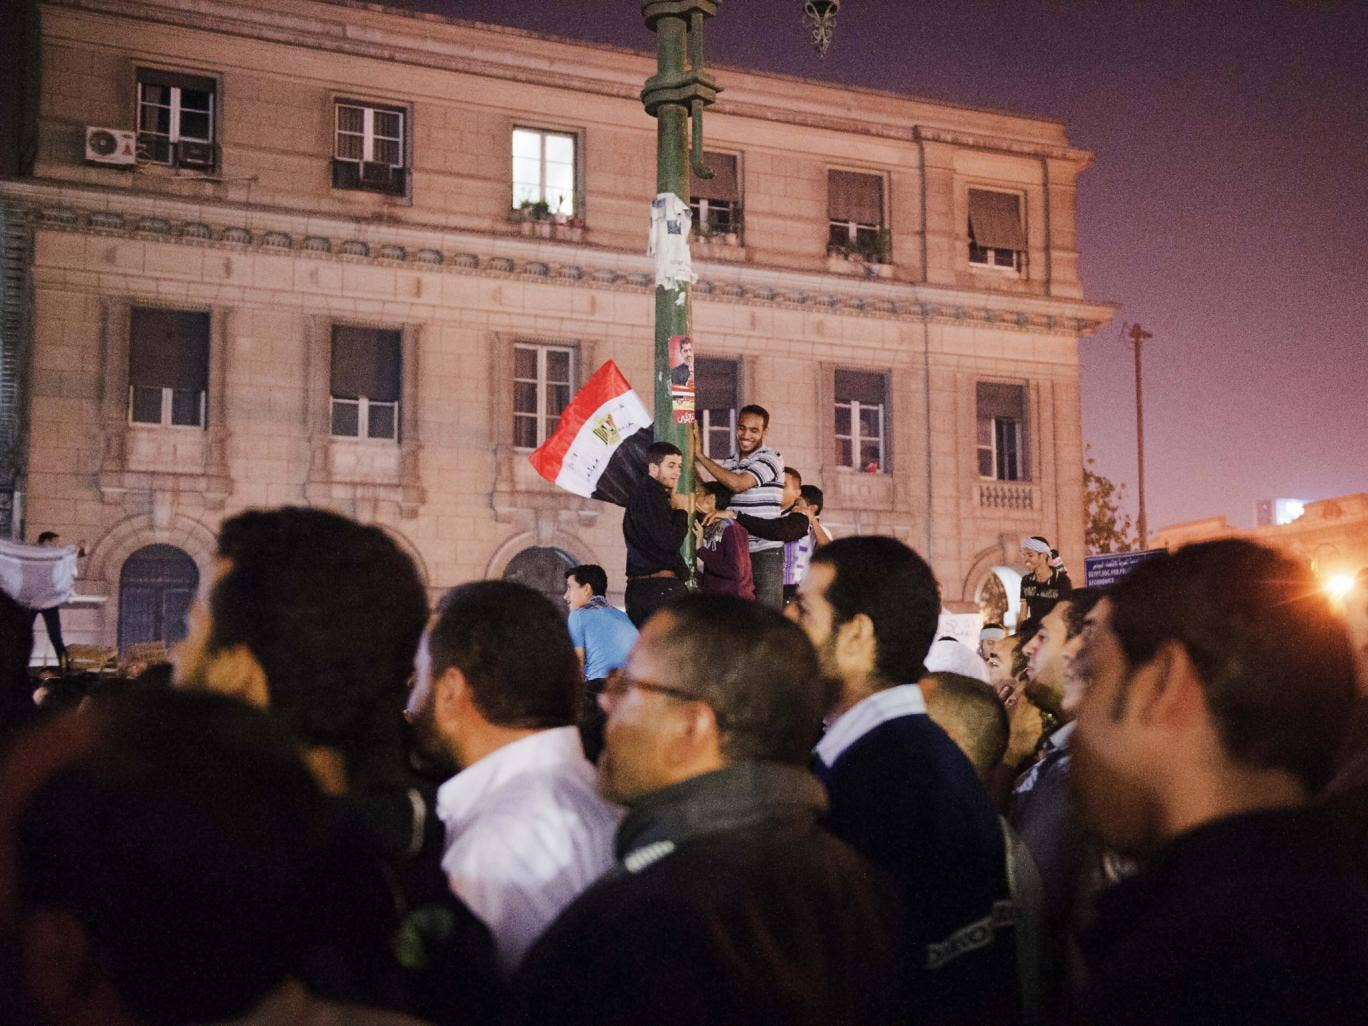 Supporters of Egypt's President Mohamed Morsi wave their national flag as they celebrate in front of the Egyptian high court in Cairo